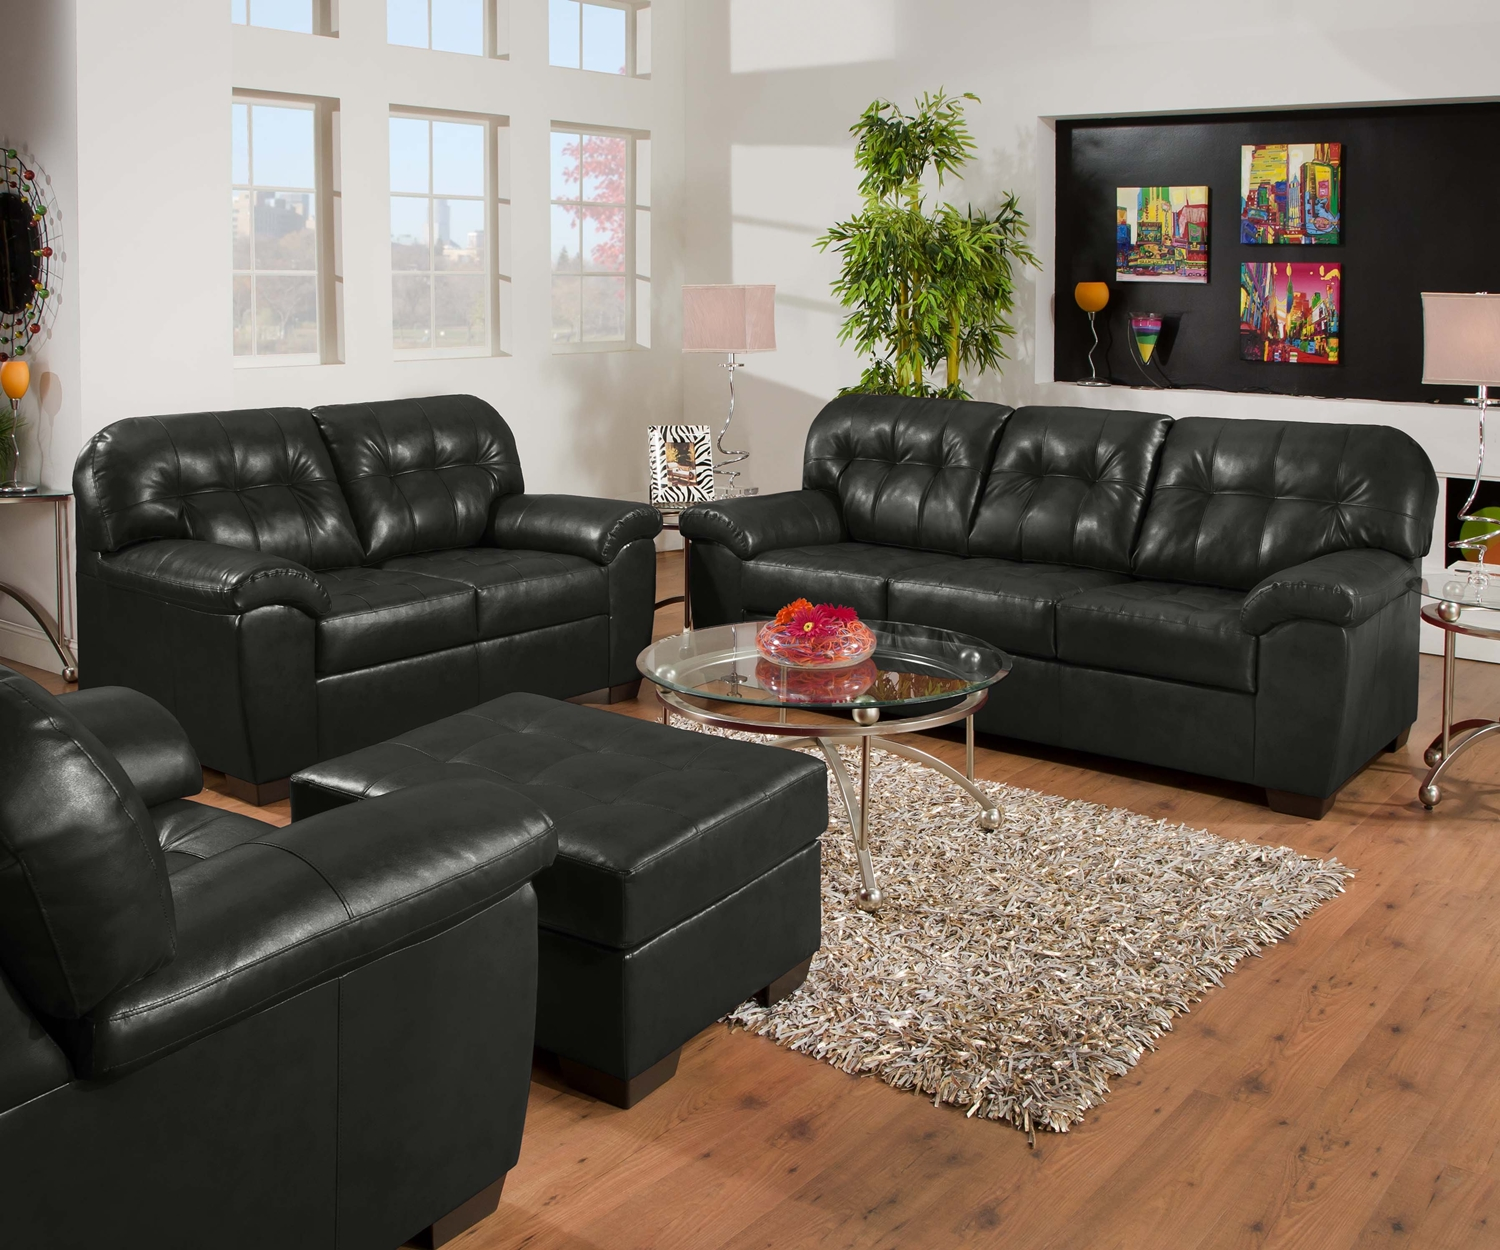 Soho Onyx Black Contemporary Tufted Bonded Leather Living ...